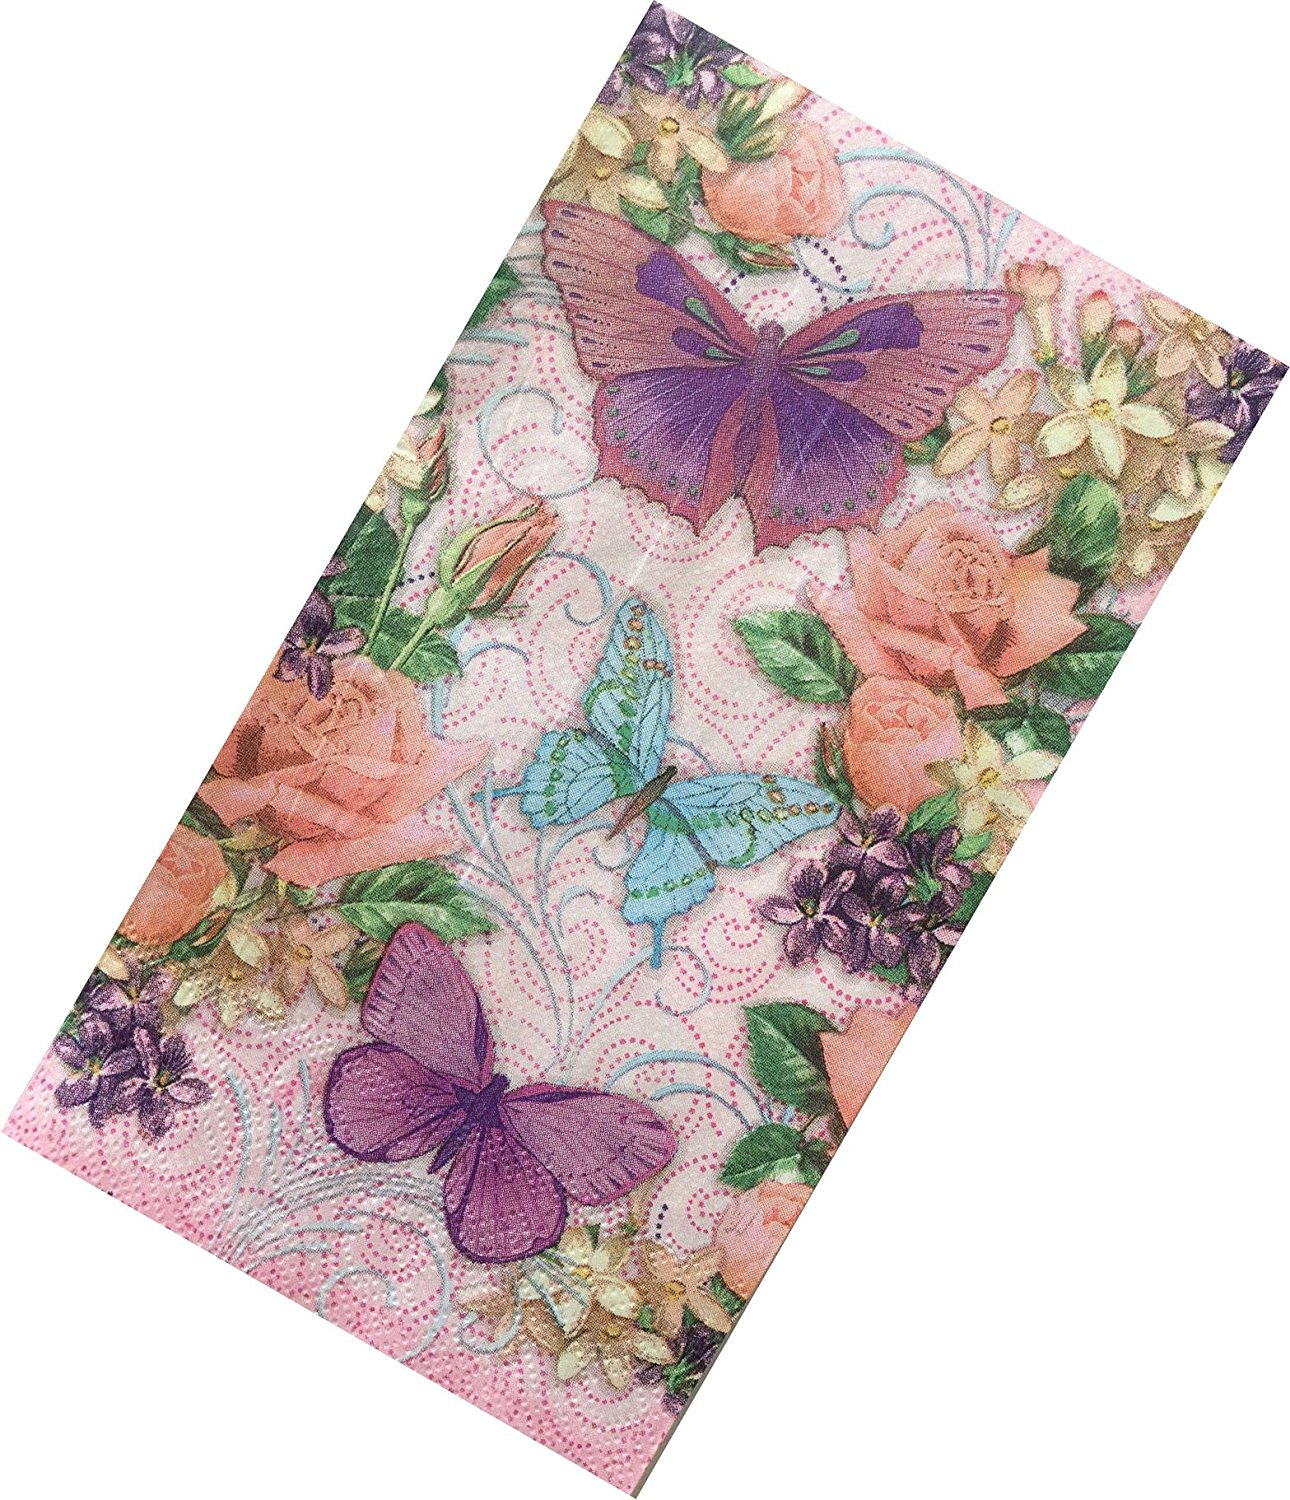 """Custom Made & Disposable {13"""" x 16"""" Inch} 2 Set Count of 3 Ply Jumbo Size Rectangle """"Multi-Half Fold"""" Food & Beverage Napkins, Made of Soft Absorbent Paper w/ Butterflies & Roses {Blue, Pink & Purple}"""